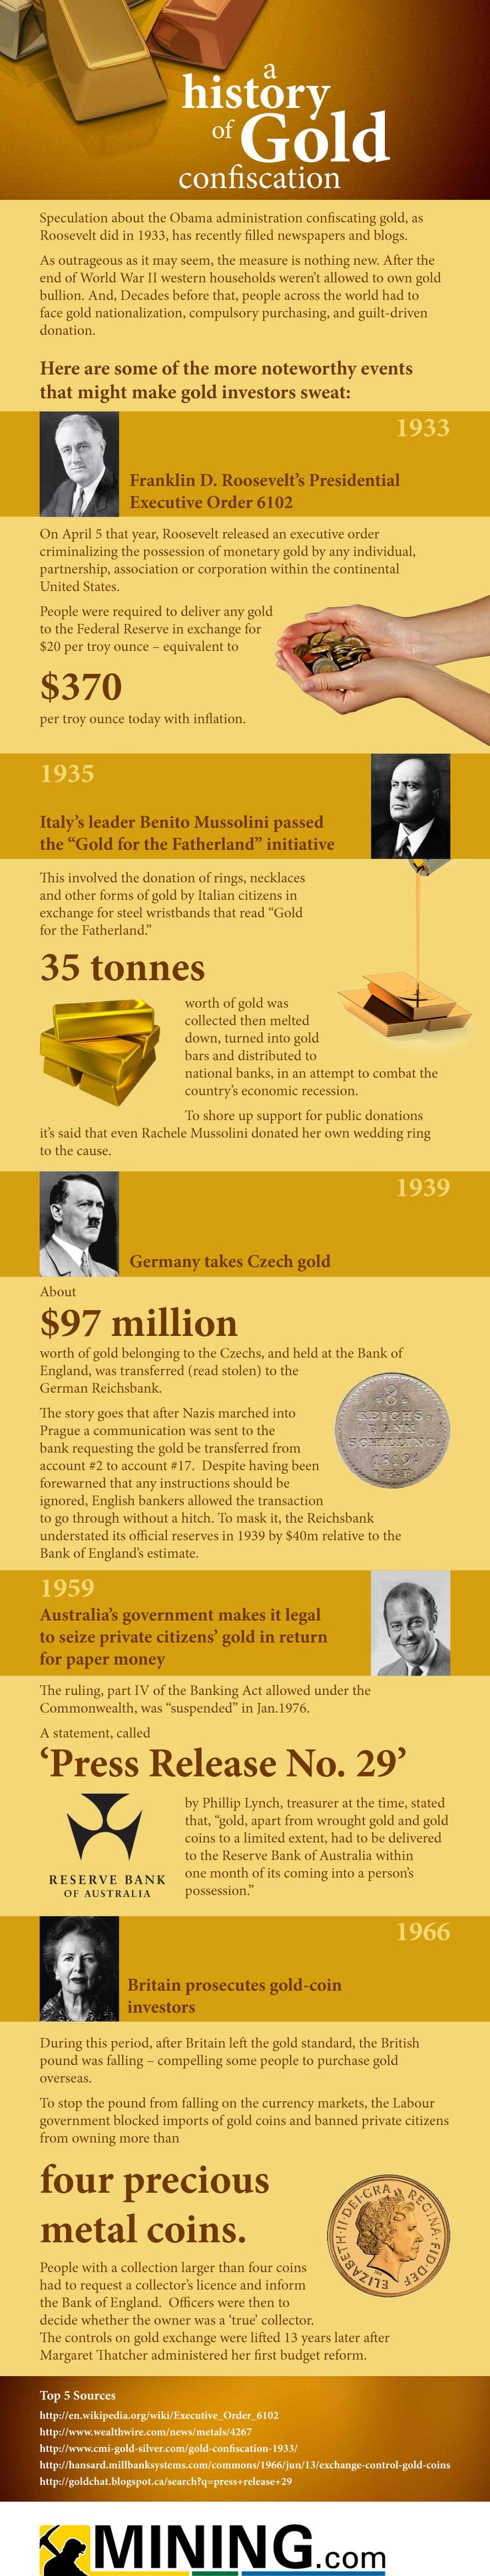 Best 25 Gold stock ideas on Pinterest